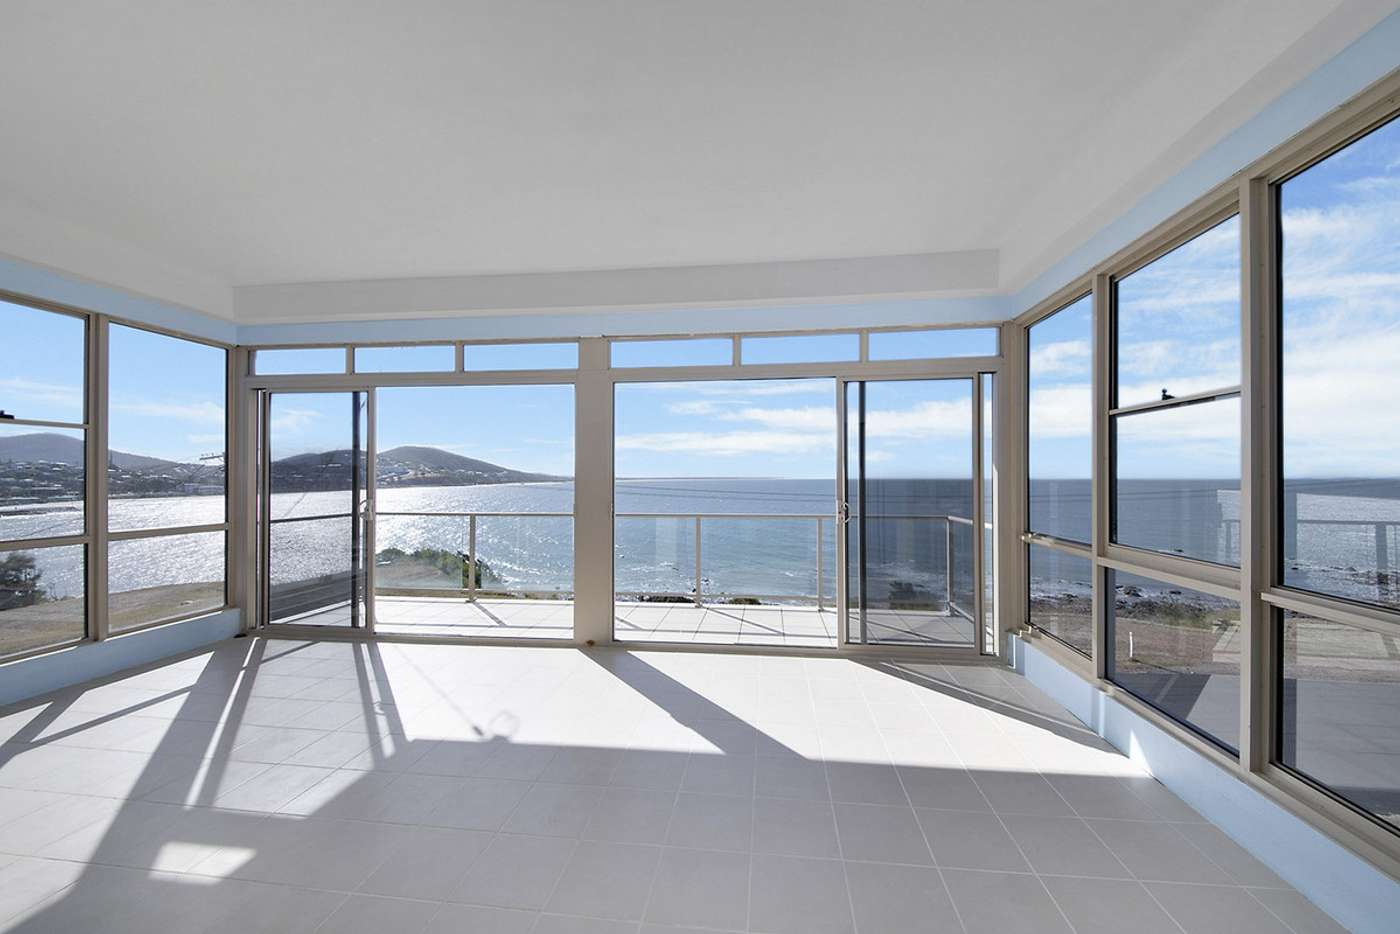 Main view of Homely house listing, 40 Ocean Parade, Cooee Bay QLD 4703